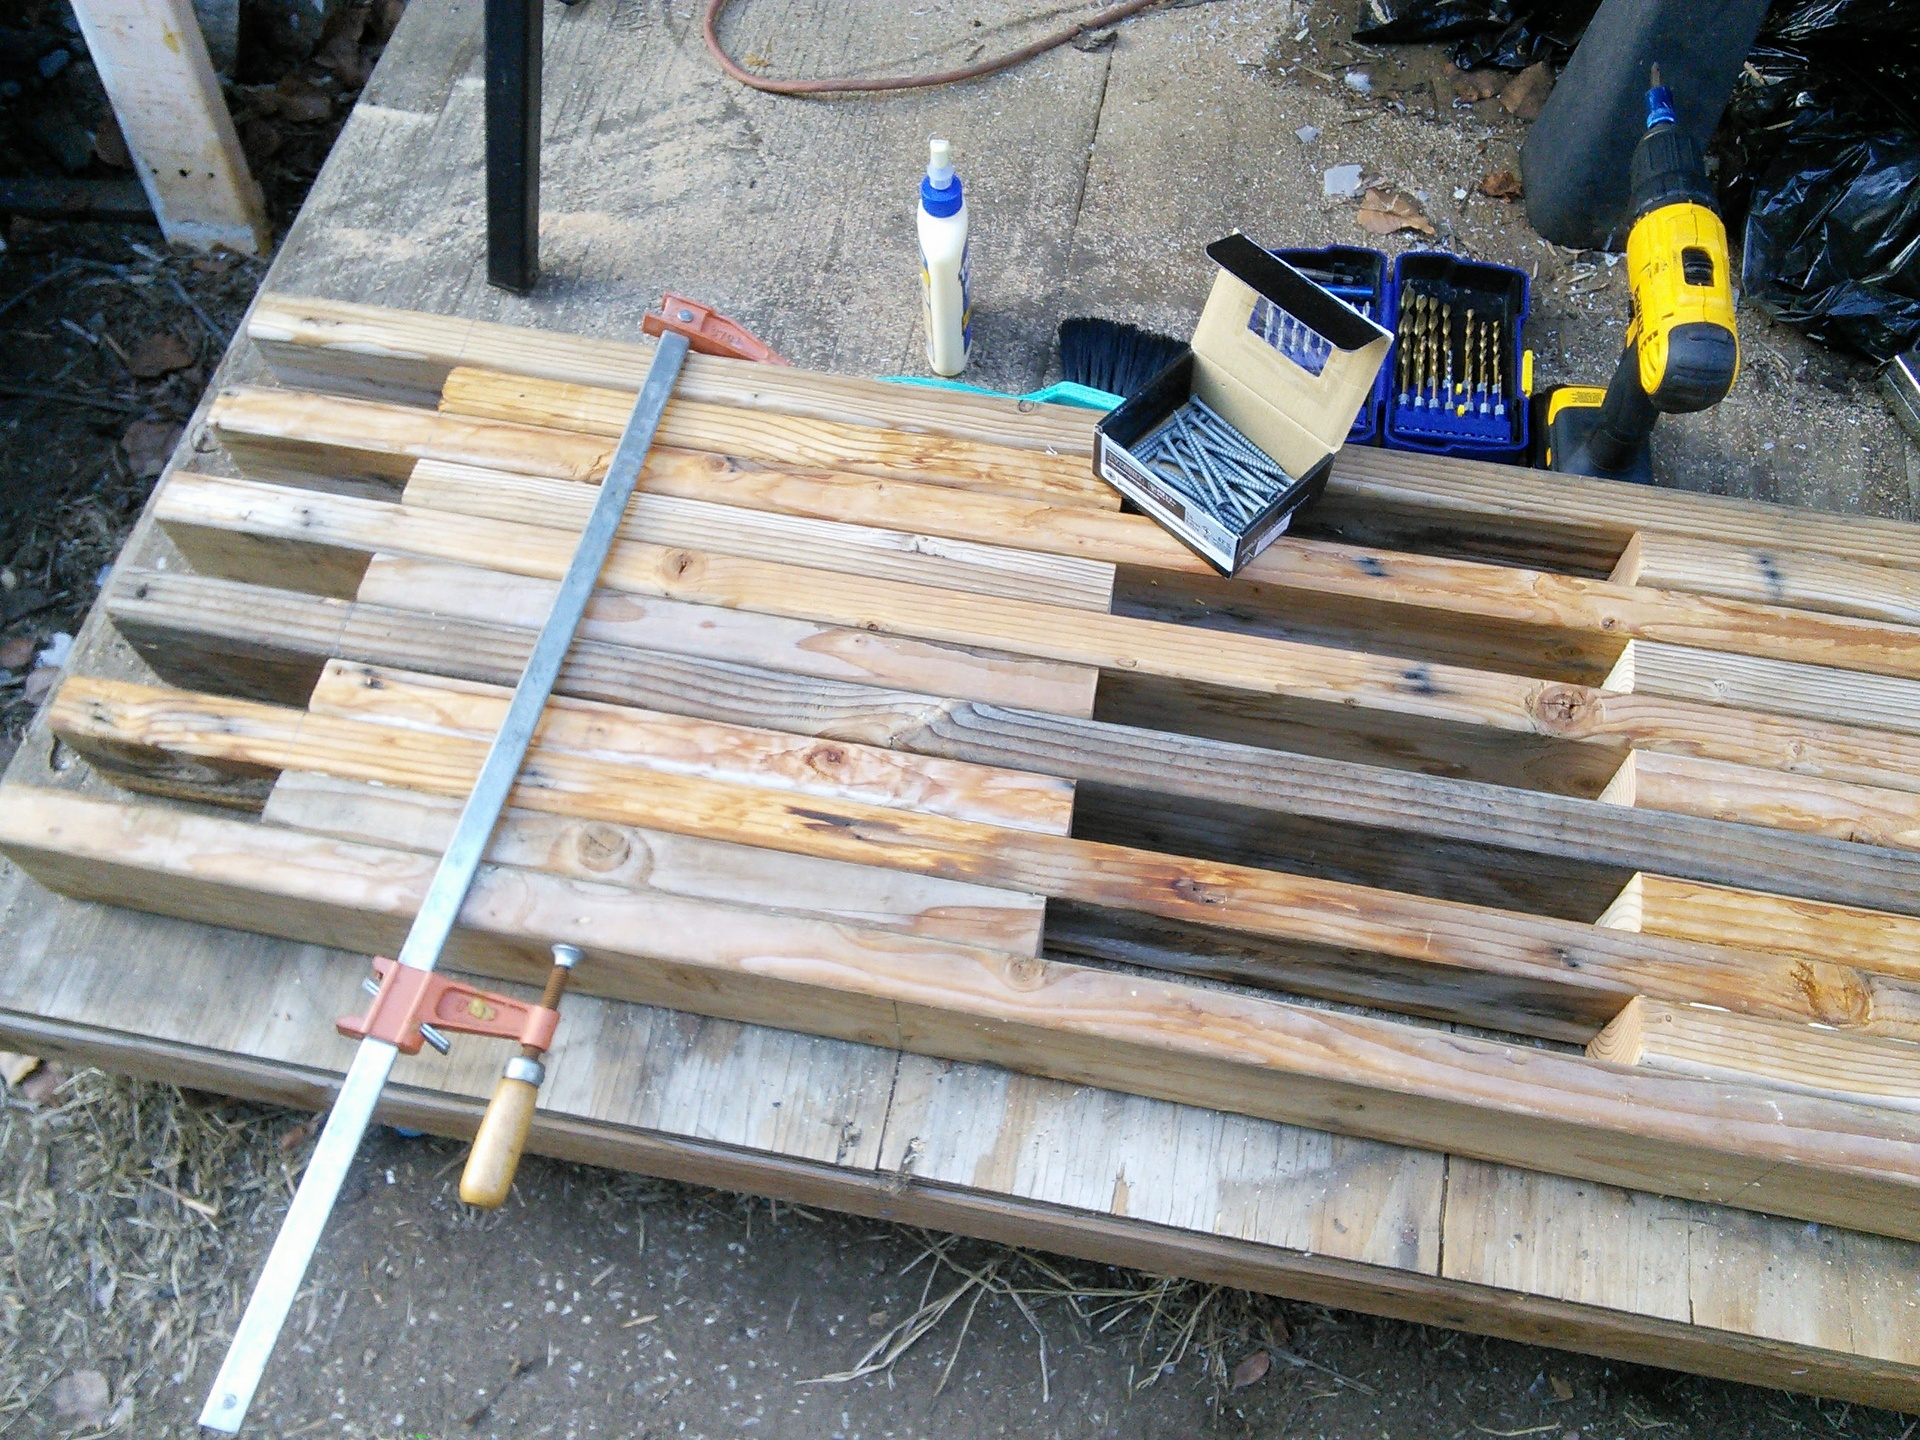 """The bench fully assembled (24"""" clamp helped keep thei pieces from separating while screwing)"""